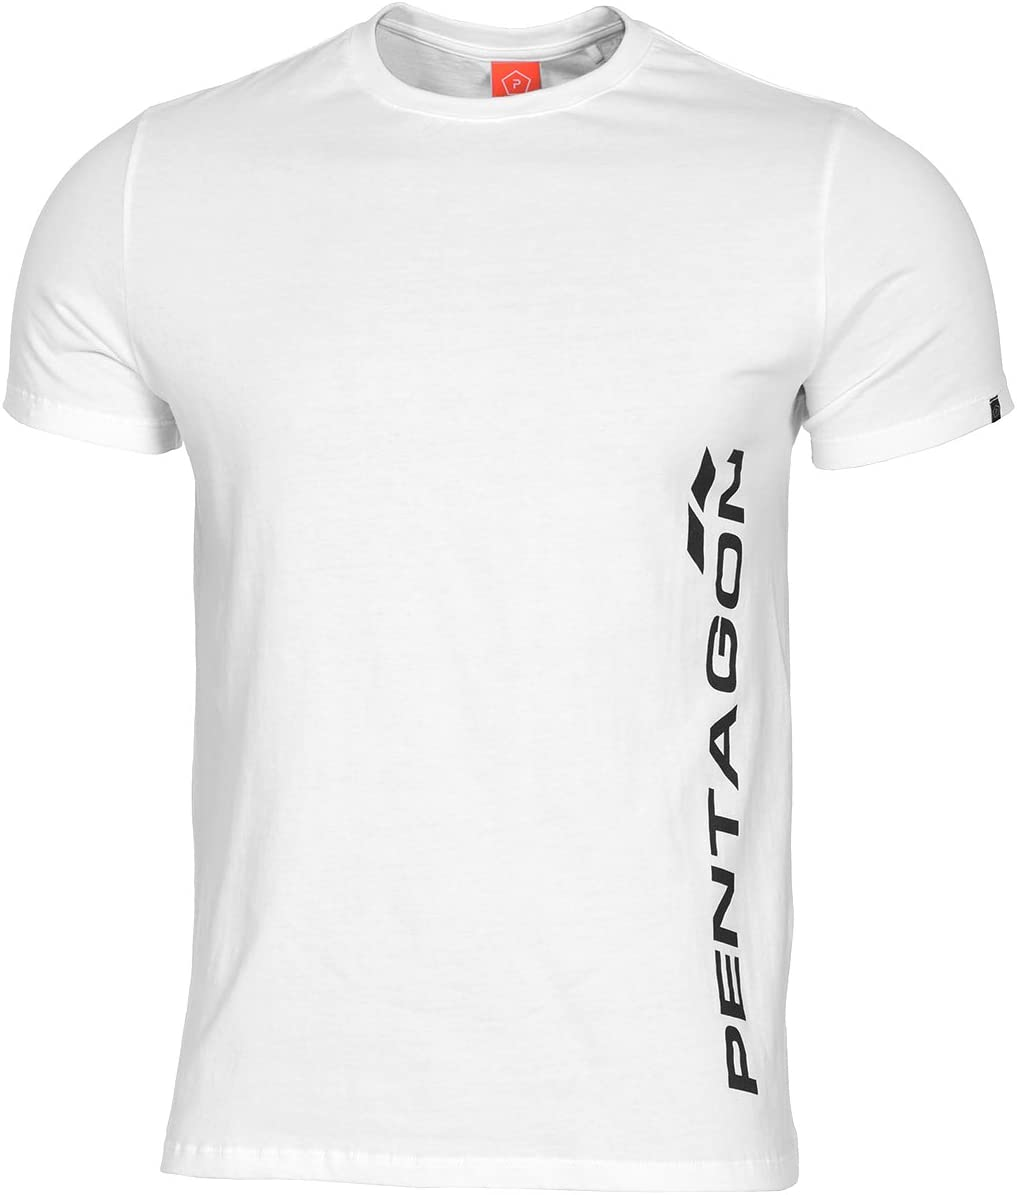 Pentagon Hombres Ageron T-Shirt Pentagon Vertical Blanco: Amazon ...